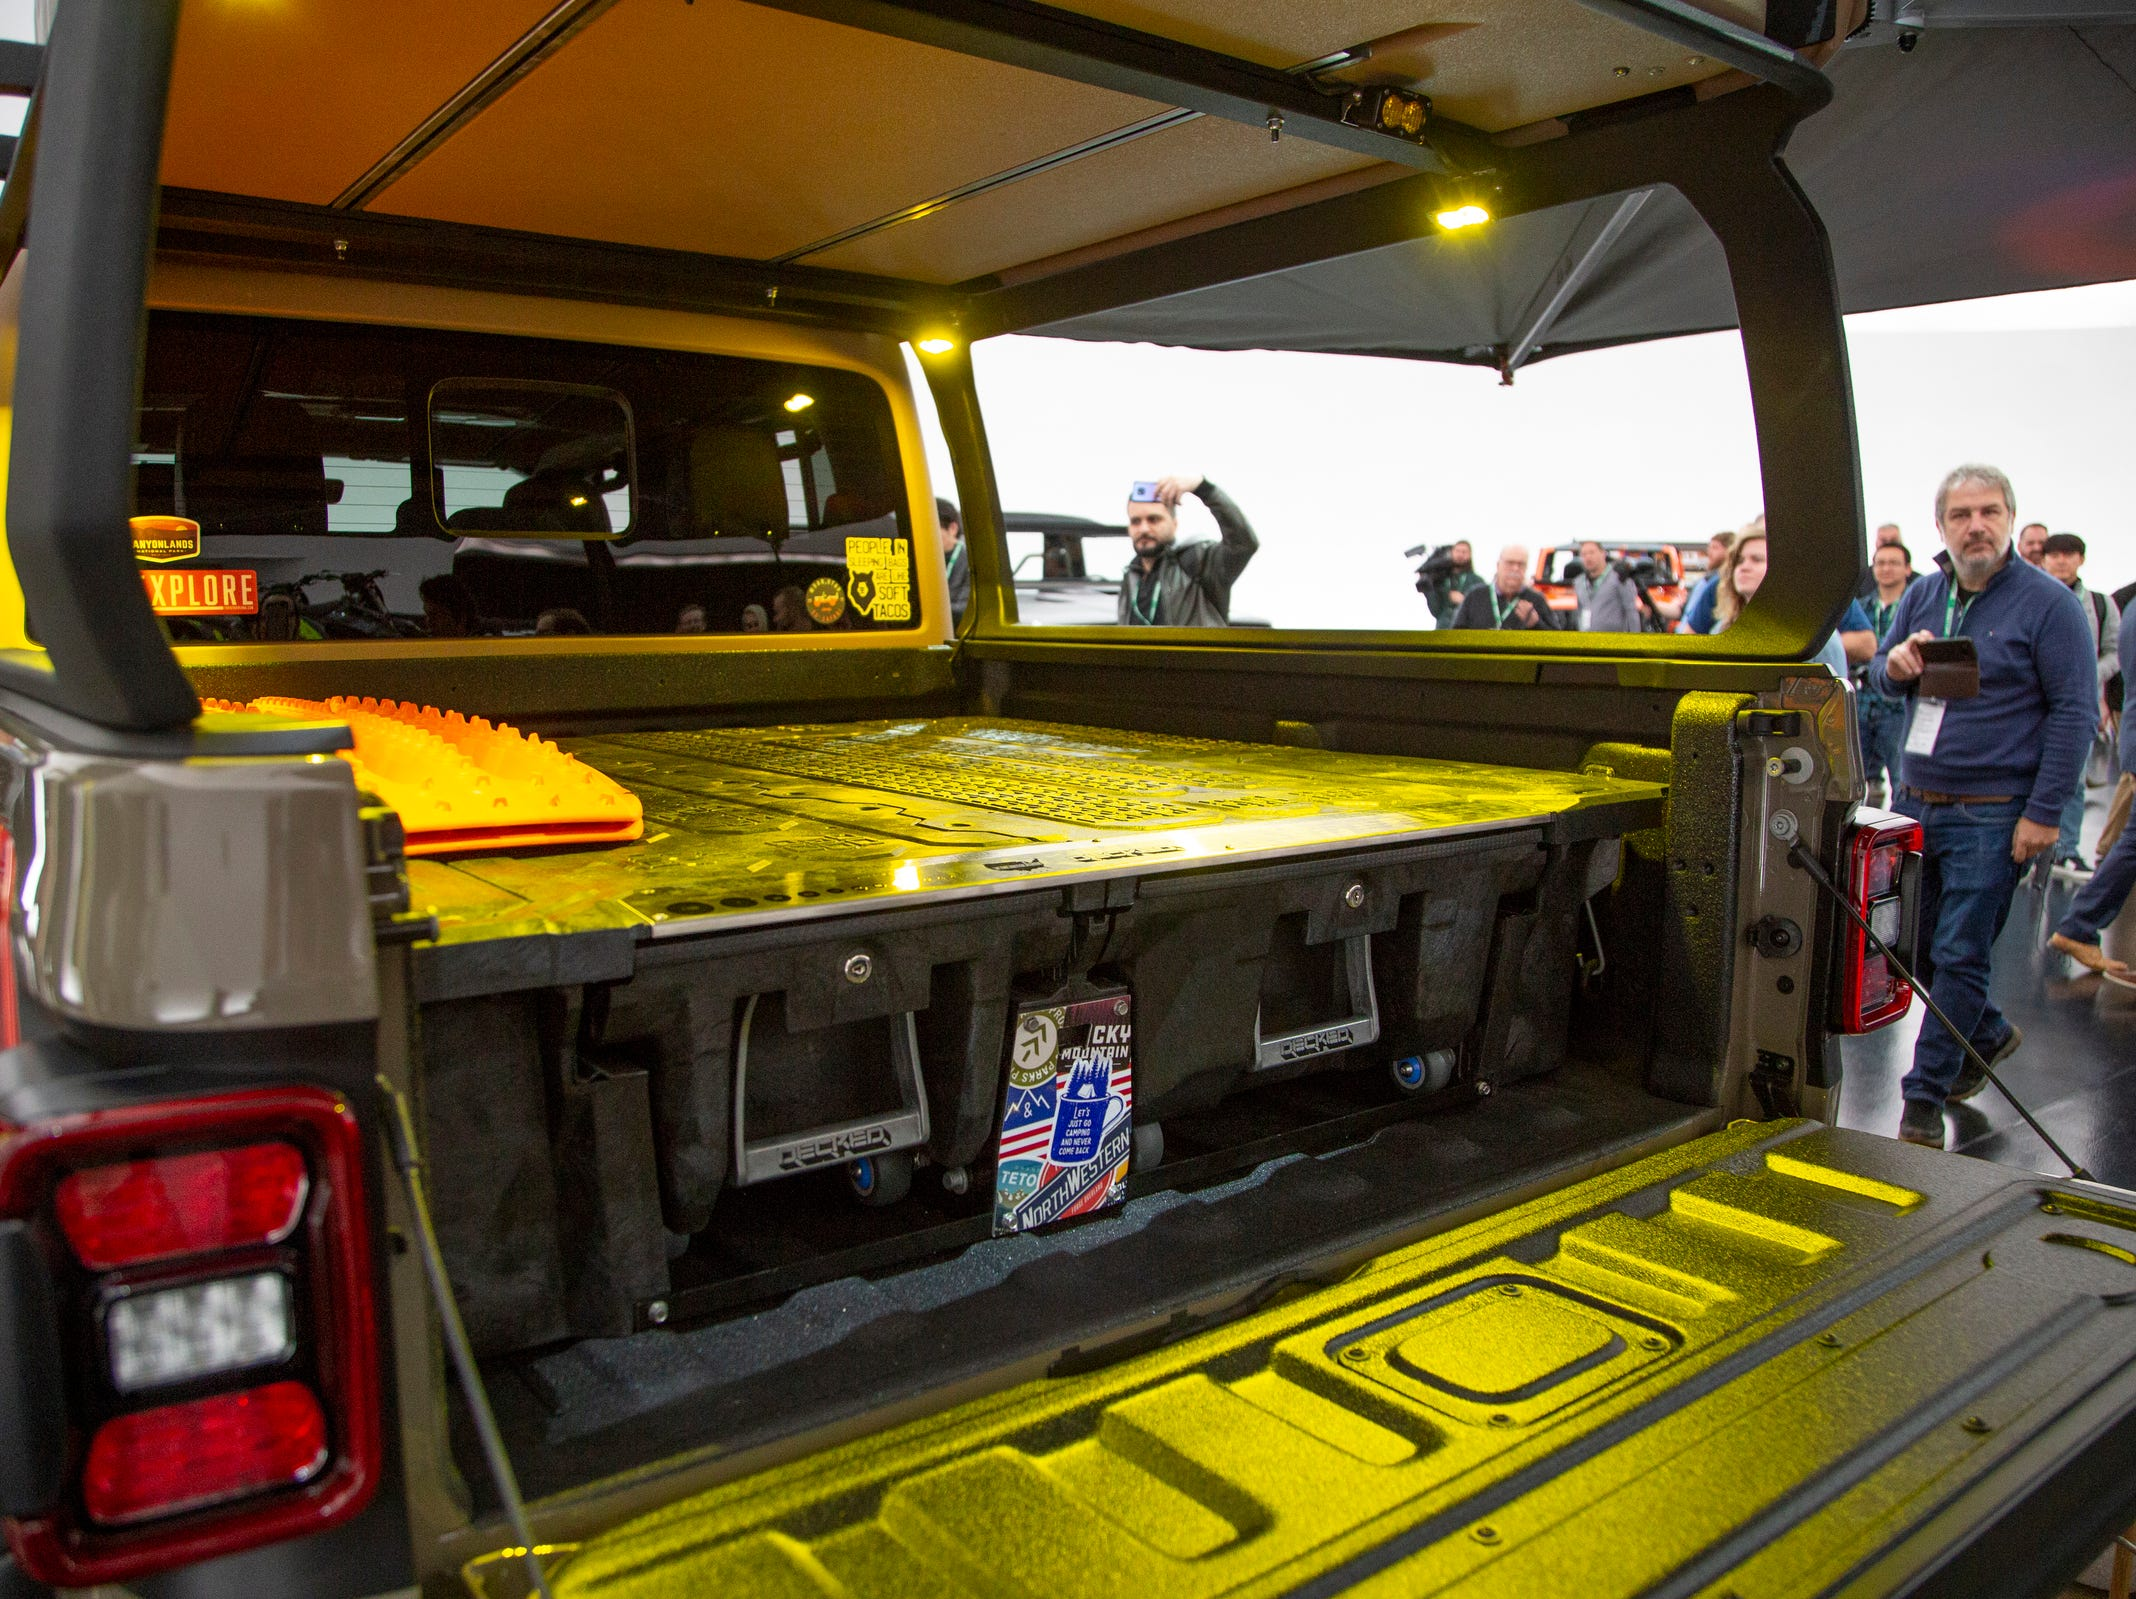 Jeep and Mopar brands debut six concept vehicles including the Jeep Wayout Friday, April 5, 2019 at the Fiat Chrysler Tech Center and headquarters for the 53rd annual Moab Easter Jeep Safari. The Jeep Wayout showcases a full roof-top tent and custom, large sprawling canopy. The Wayout's body armored exterior features a new Gator Green color that will be available on all production Gladiator models. This Jeep also features a Mopar/Decked bed-drawer system for added lockable dry storage on long treks.